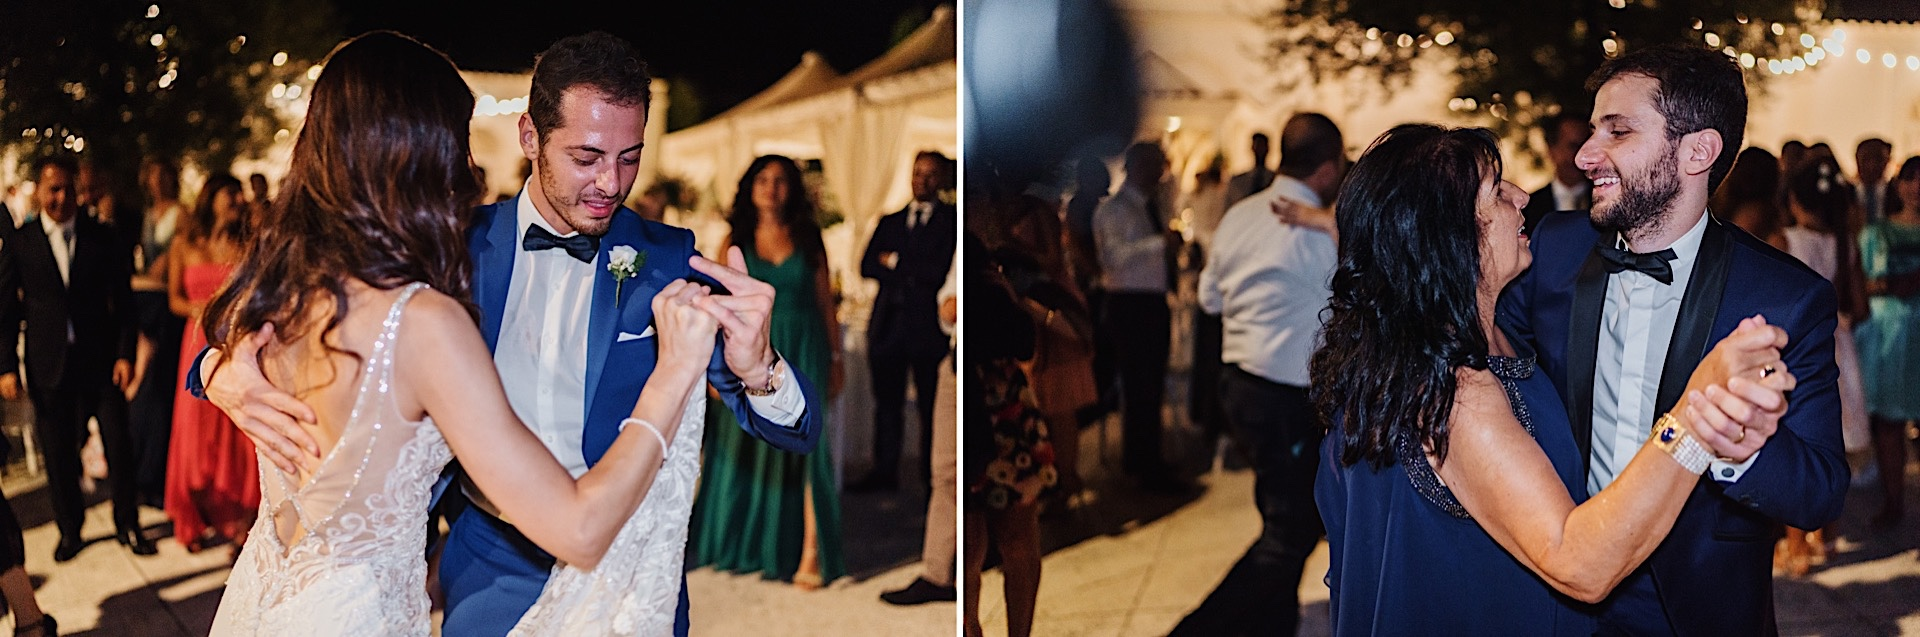 69__DSC0218__DSC0225_san_wedding_la_giuseppe_angelo_puglia_marriage_chiara_destination_tenimento_pedone_maria_photographer_torre